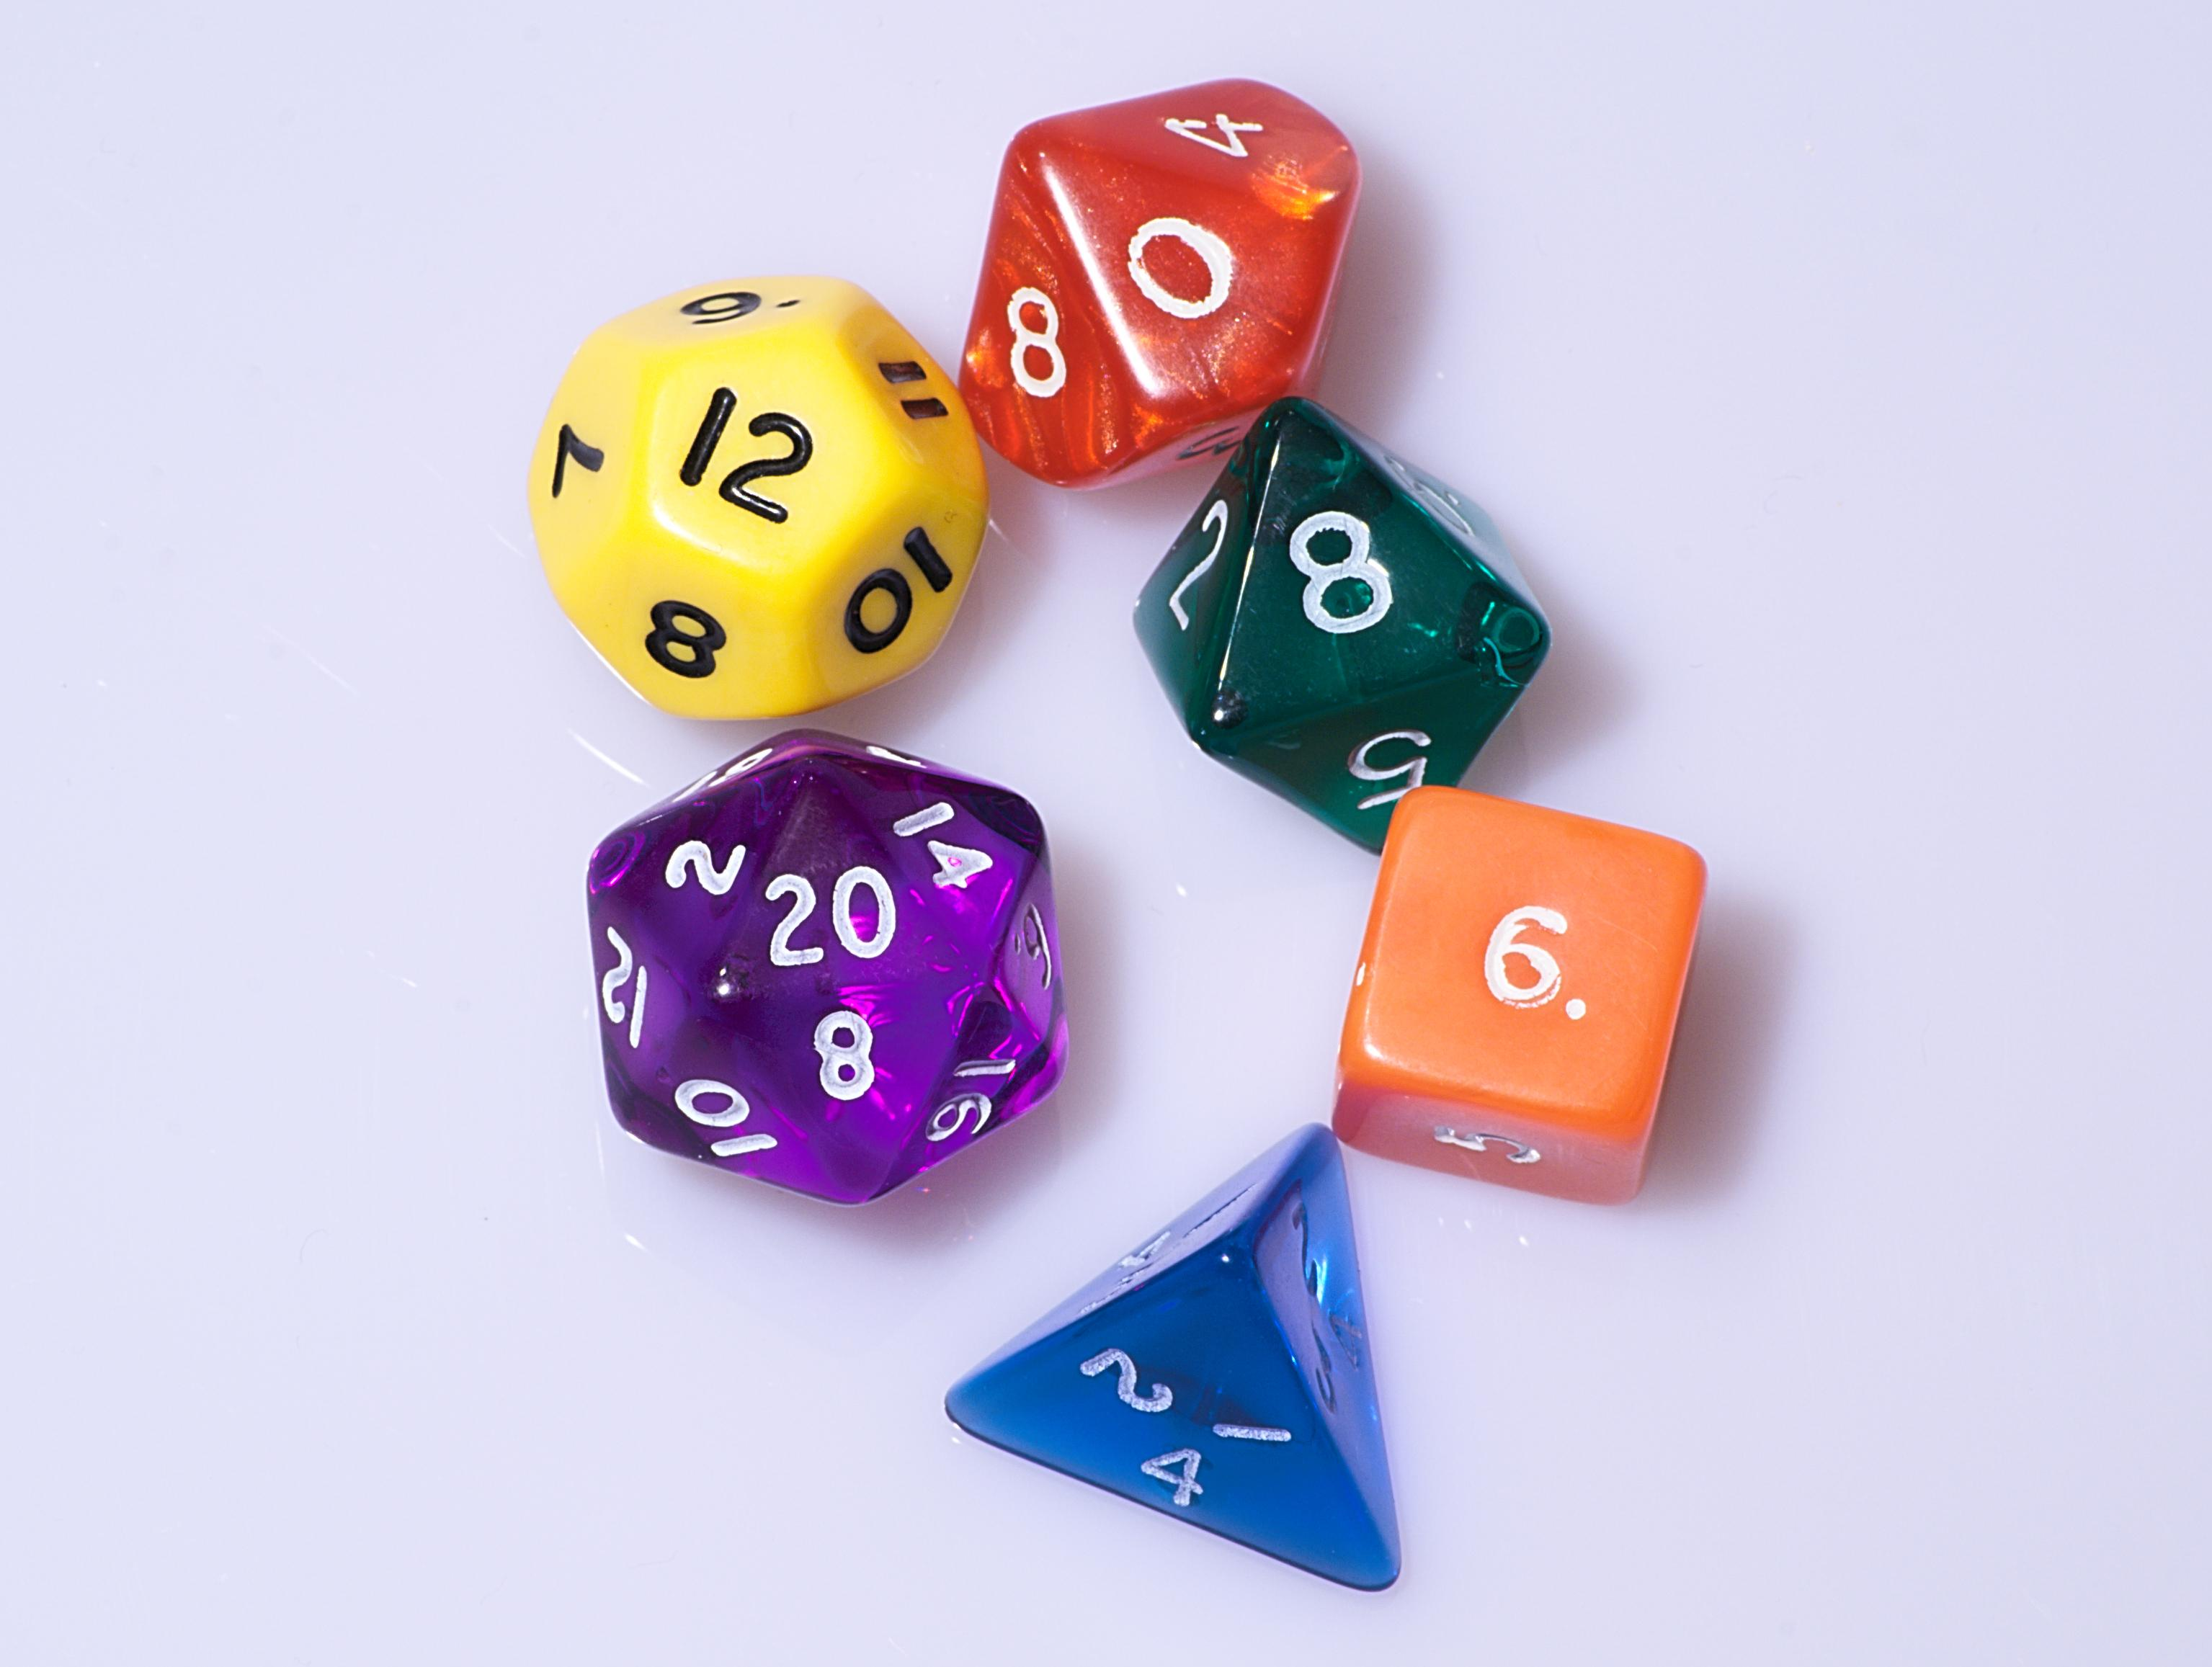 a group of multi-colored polyhedral dice